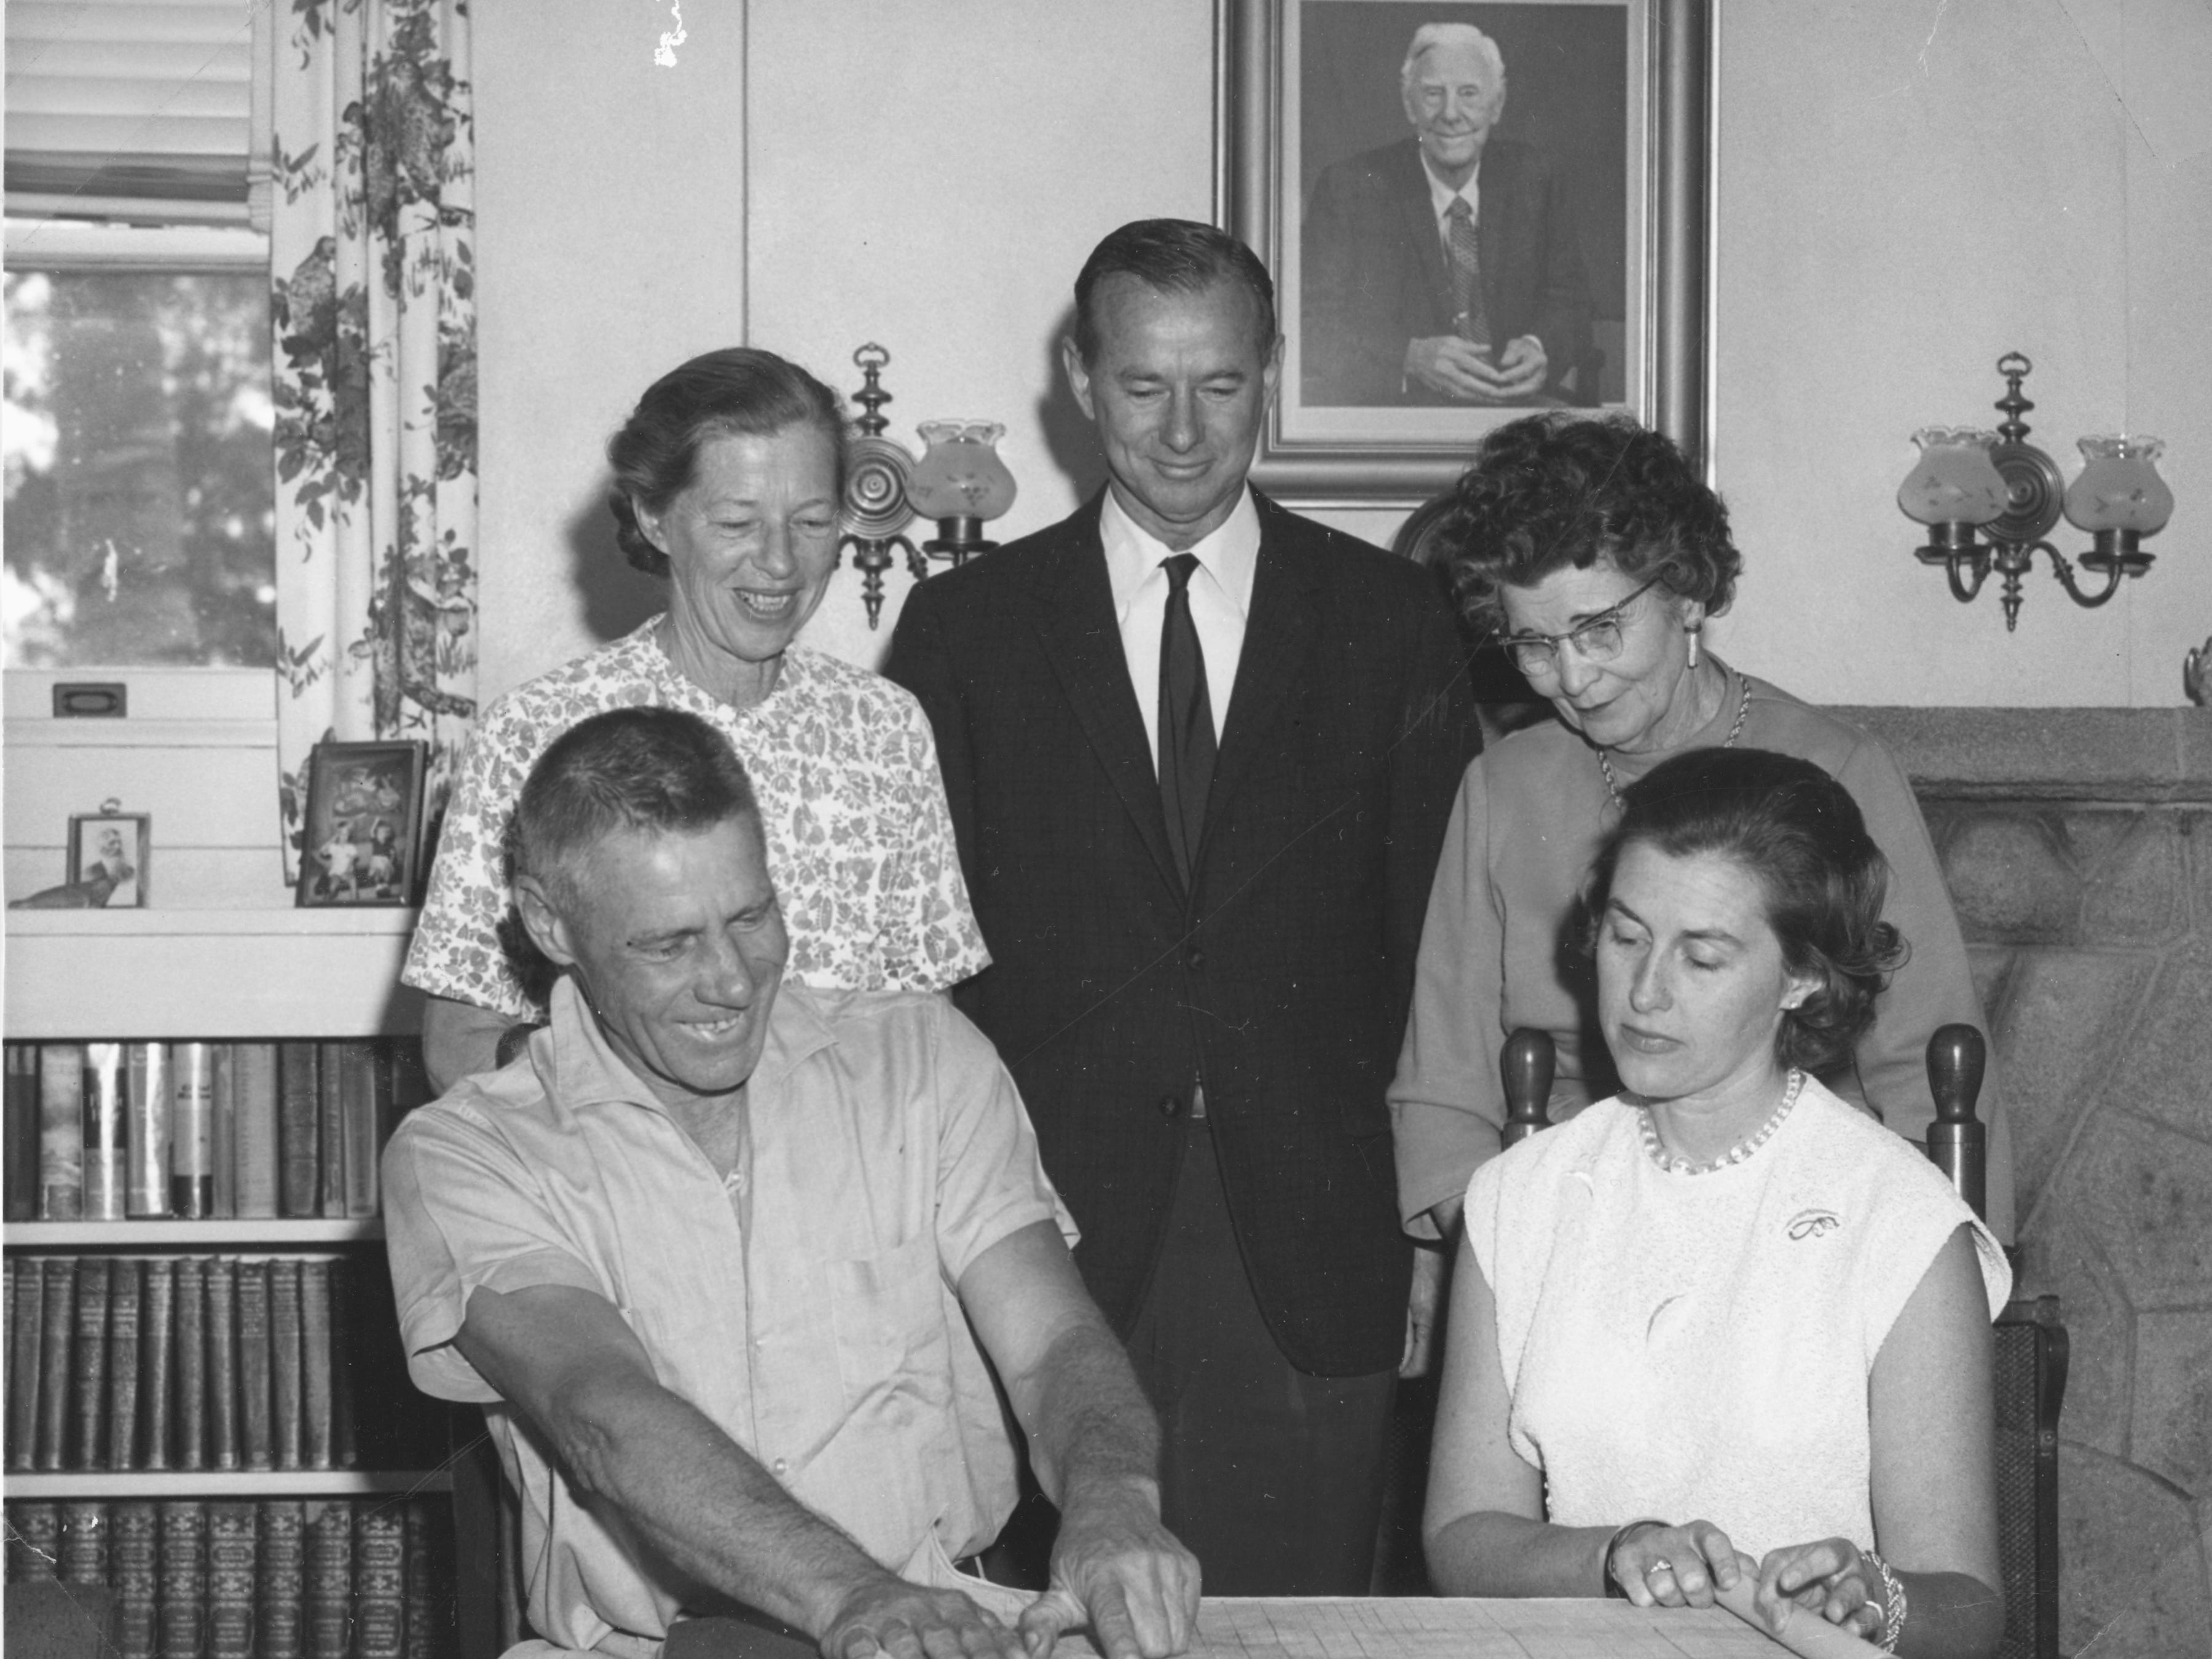 Standing from left is Jeannette Michael Lier, Joe Michael and Helen Kroegel Ryan, and seated from left is George Lier and Anne Michael during the incorporation of the town of Orchid ion May 12, 1965.